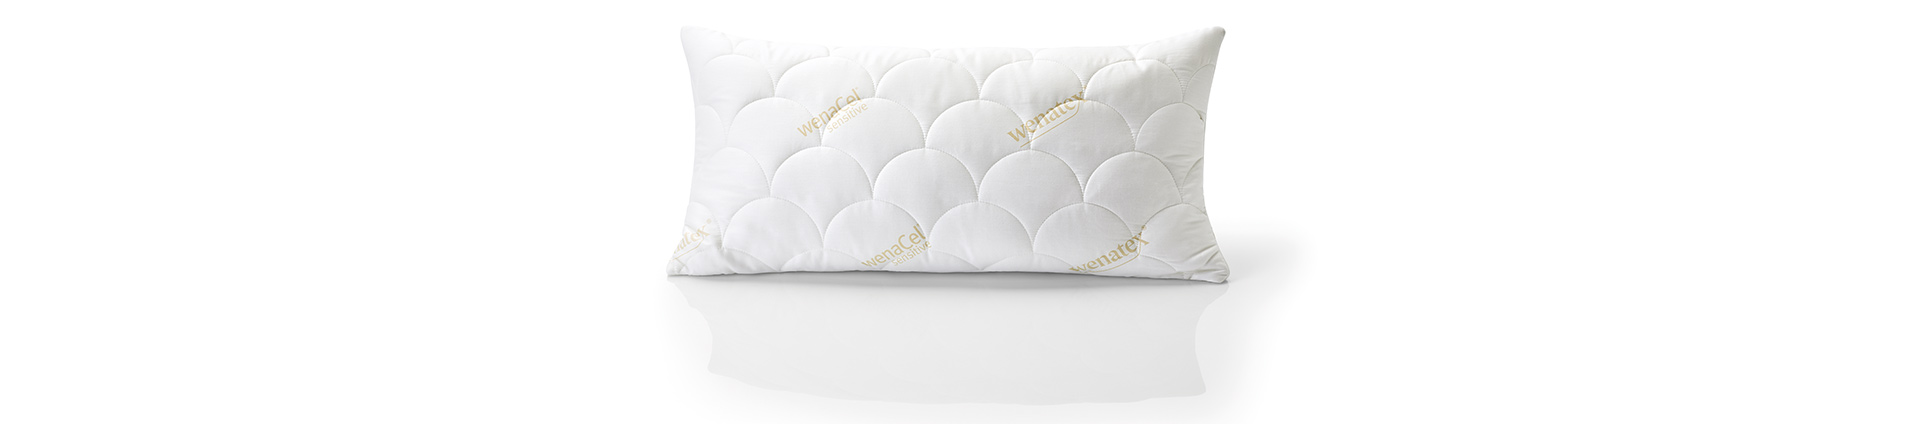 The Wenacel Sensitive Pillow From Wenatex Comfortable Support For Any Sleeping Position